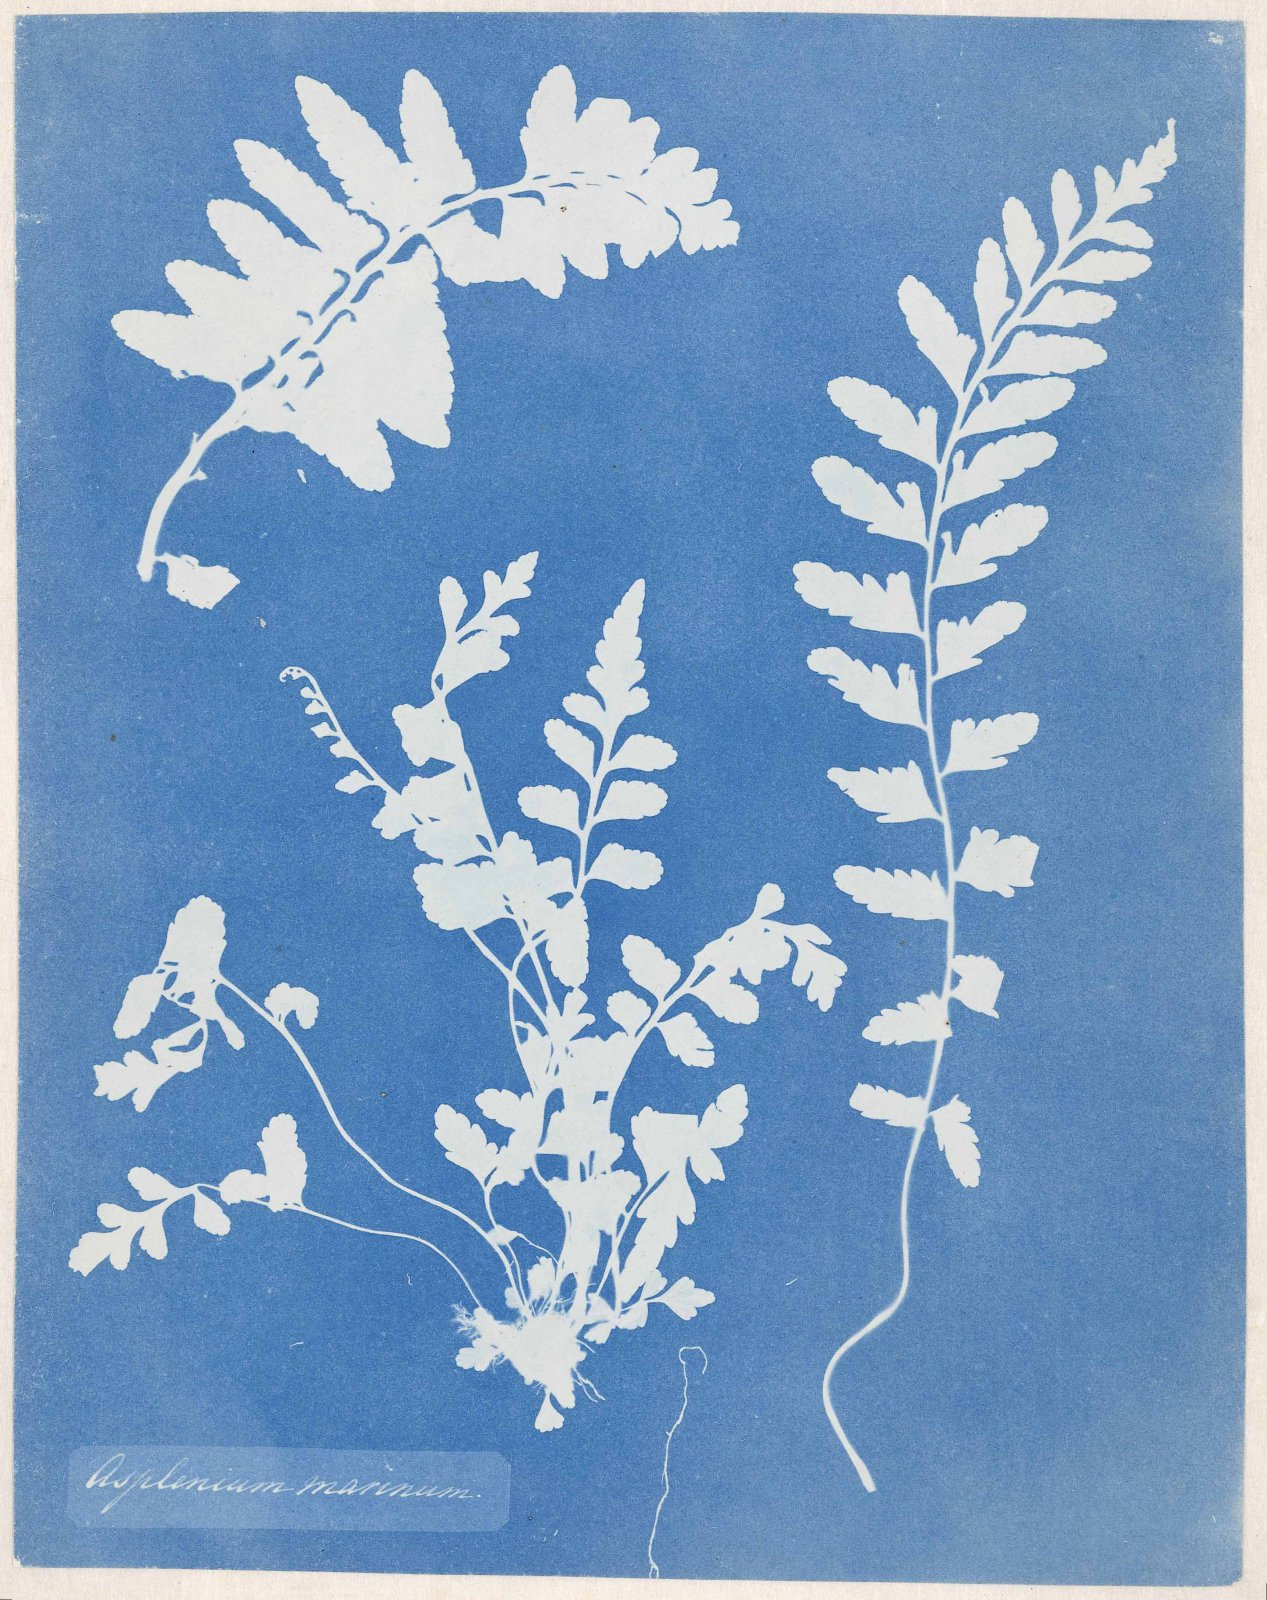 Photogram of a Asplenium marinum (Asplenium marinum) © Anna Atkins / Loan of Rijksmuseum